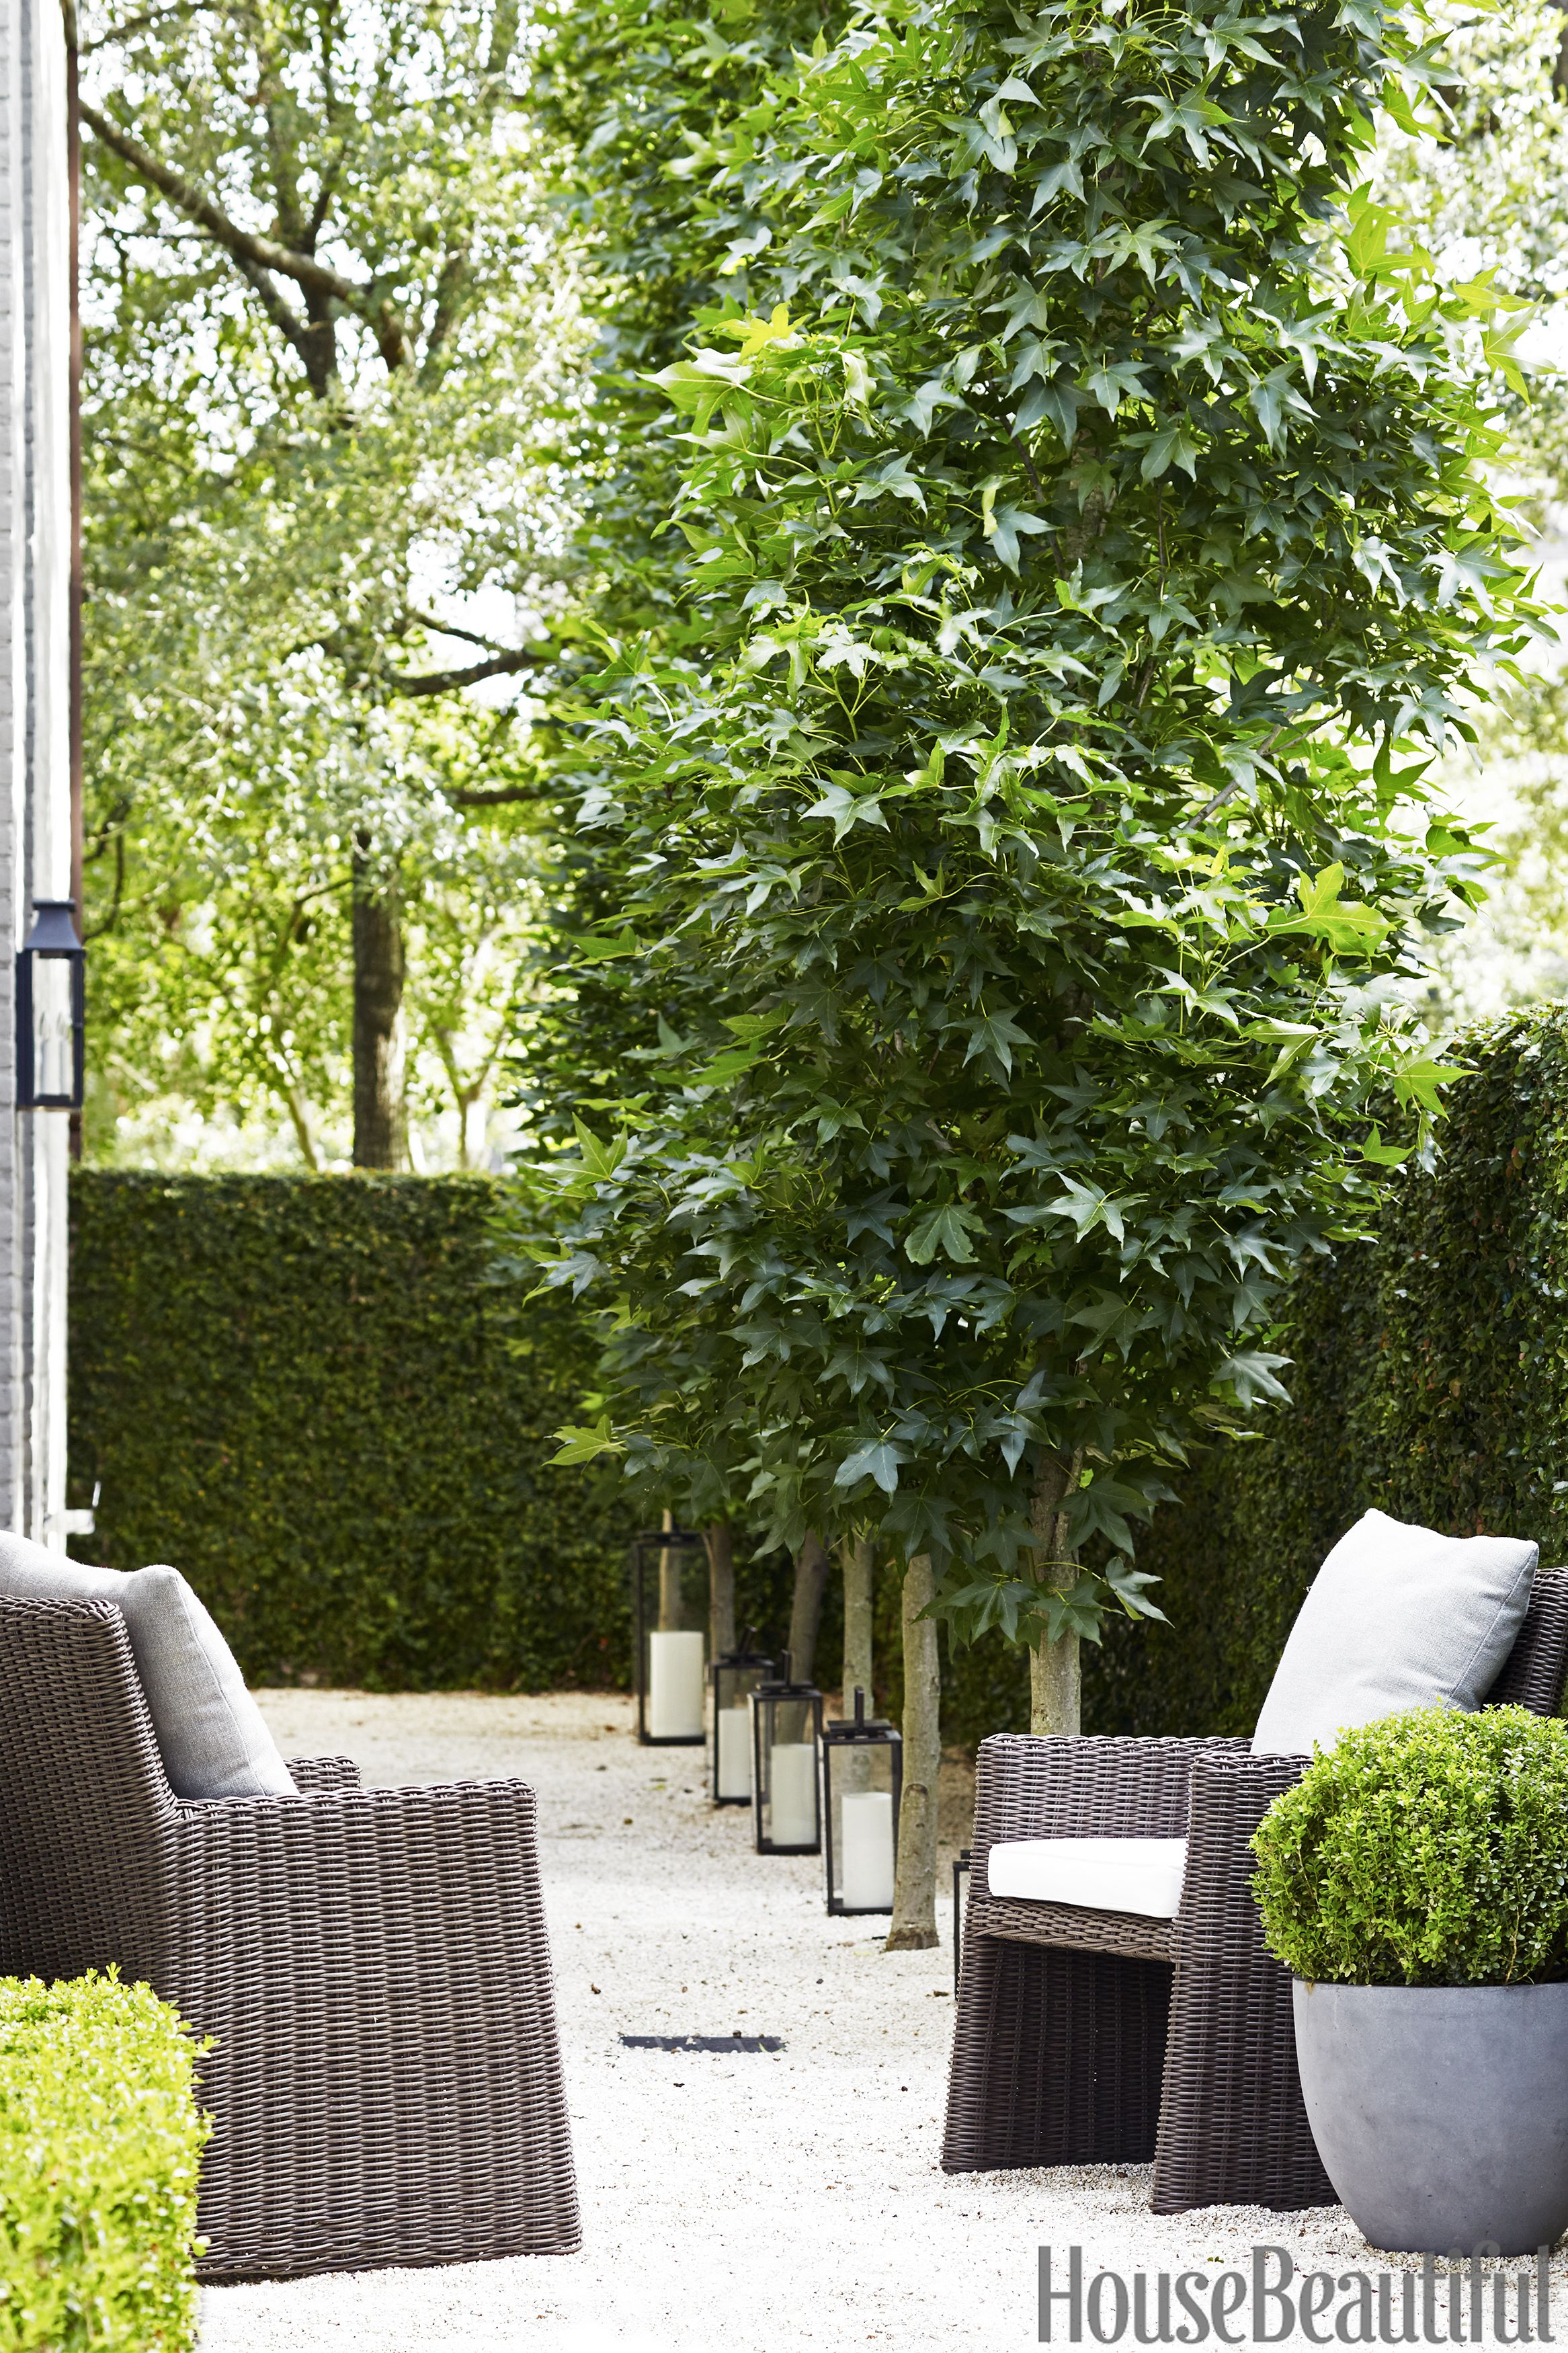 53 Beautiful Landscaping Ideas Best Backyard Landscape Design Tips inside 15 Awesome Ideas How to Build Landscaping Pictures Of Backyards